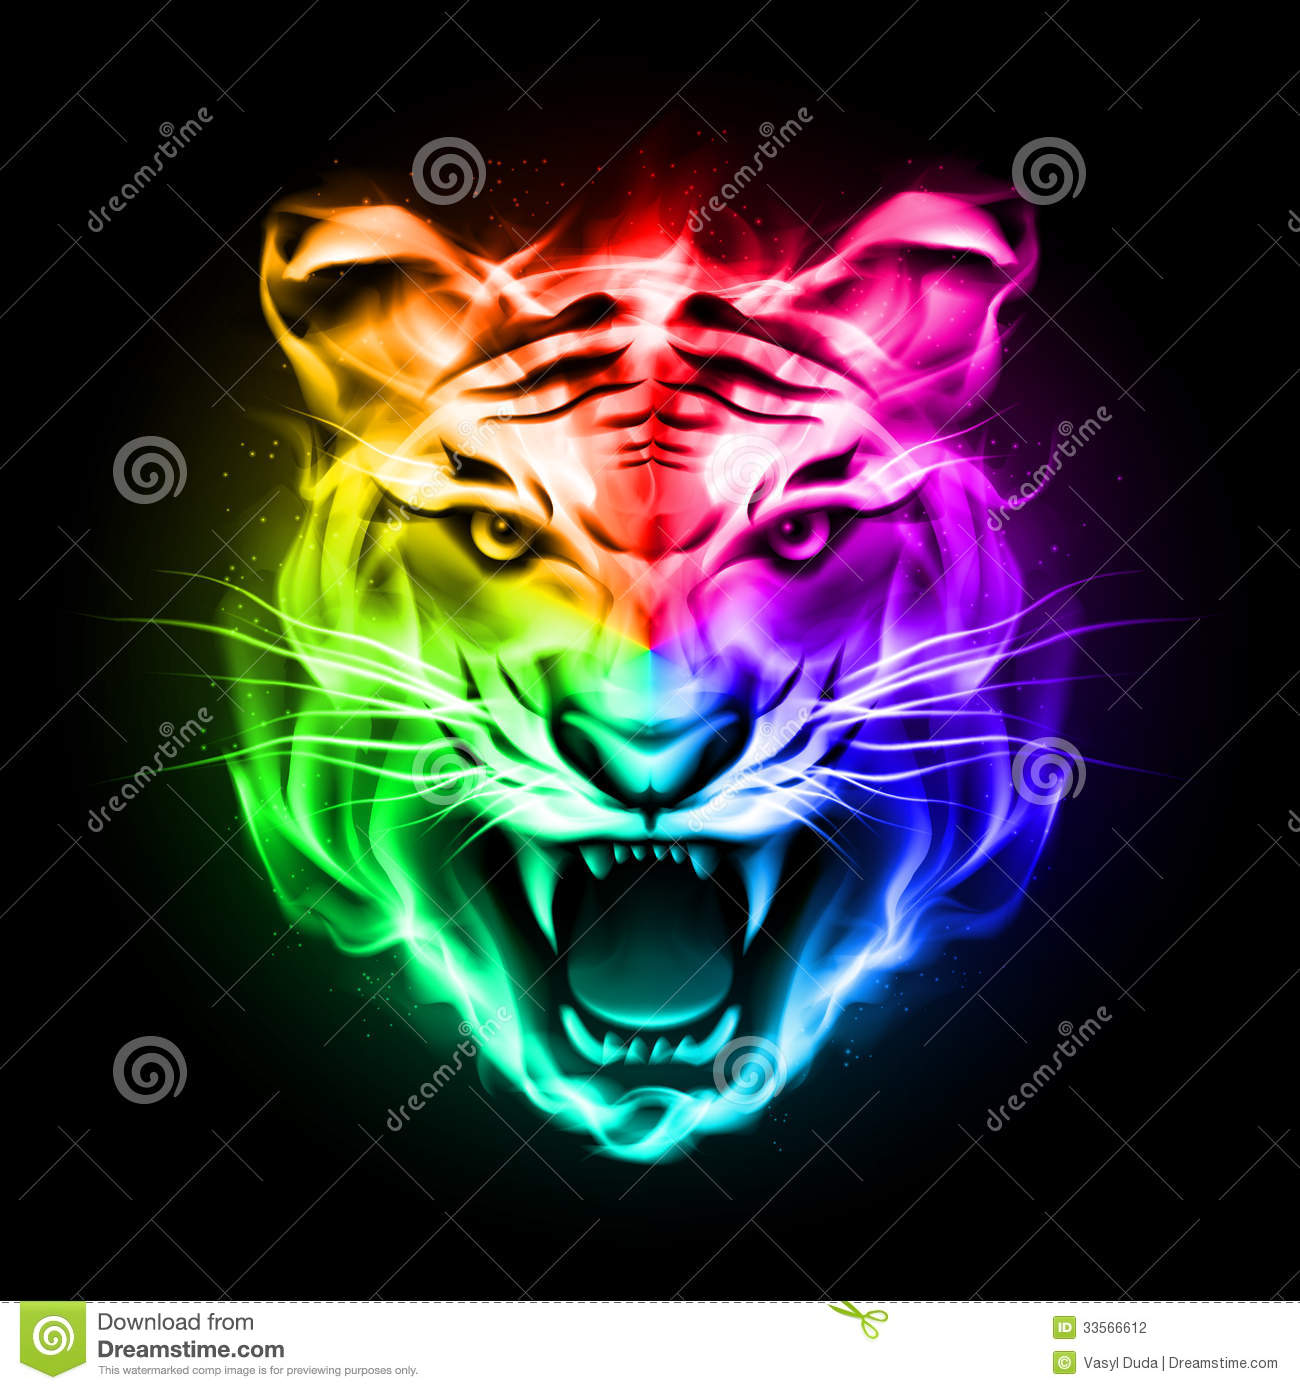 Head Of Tiger In Colorful Fire. Stock Photography - Image: 33566612